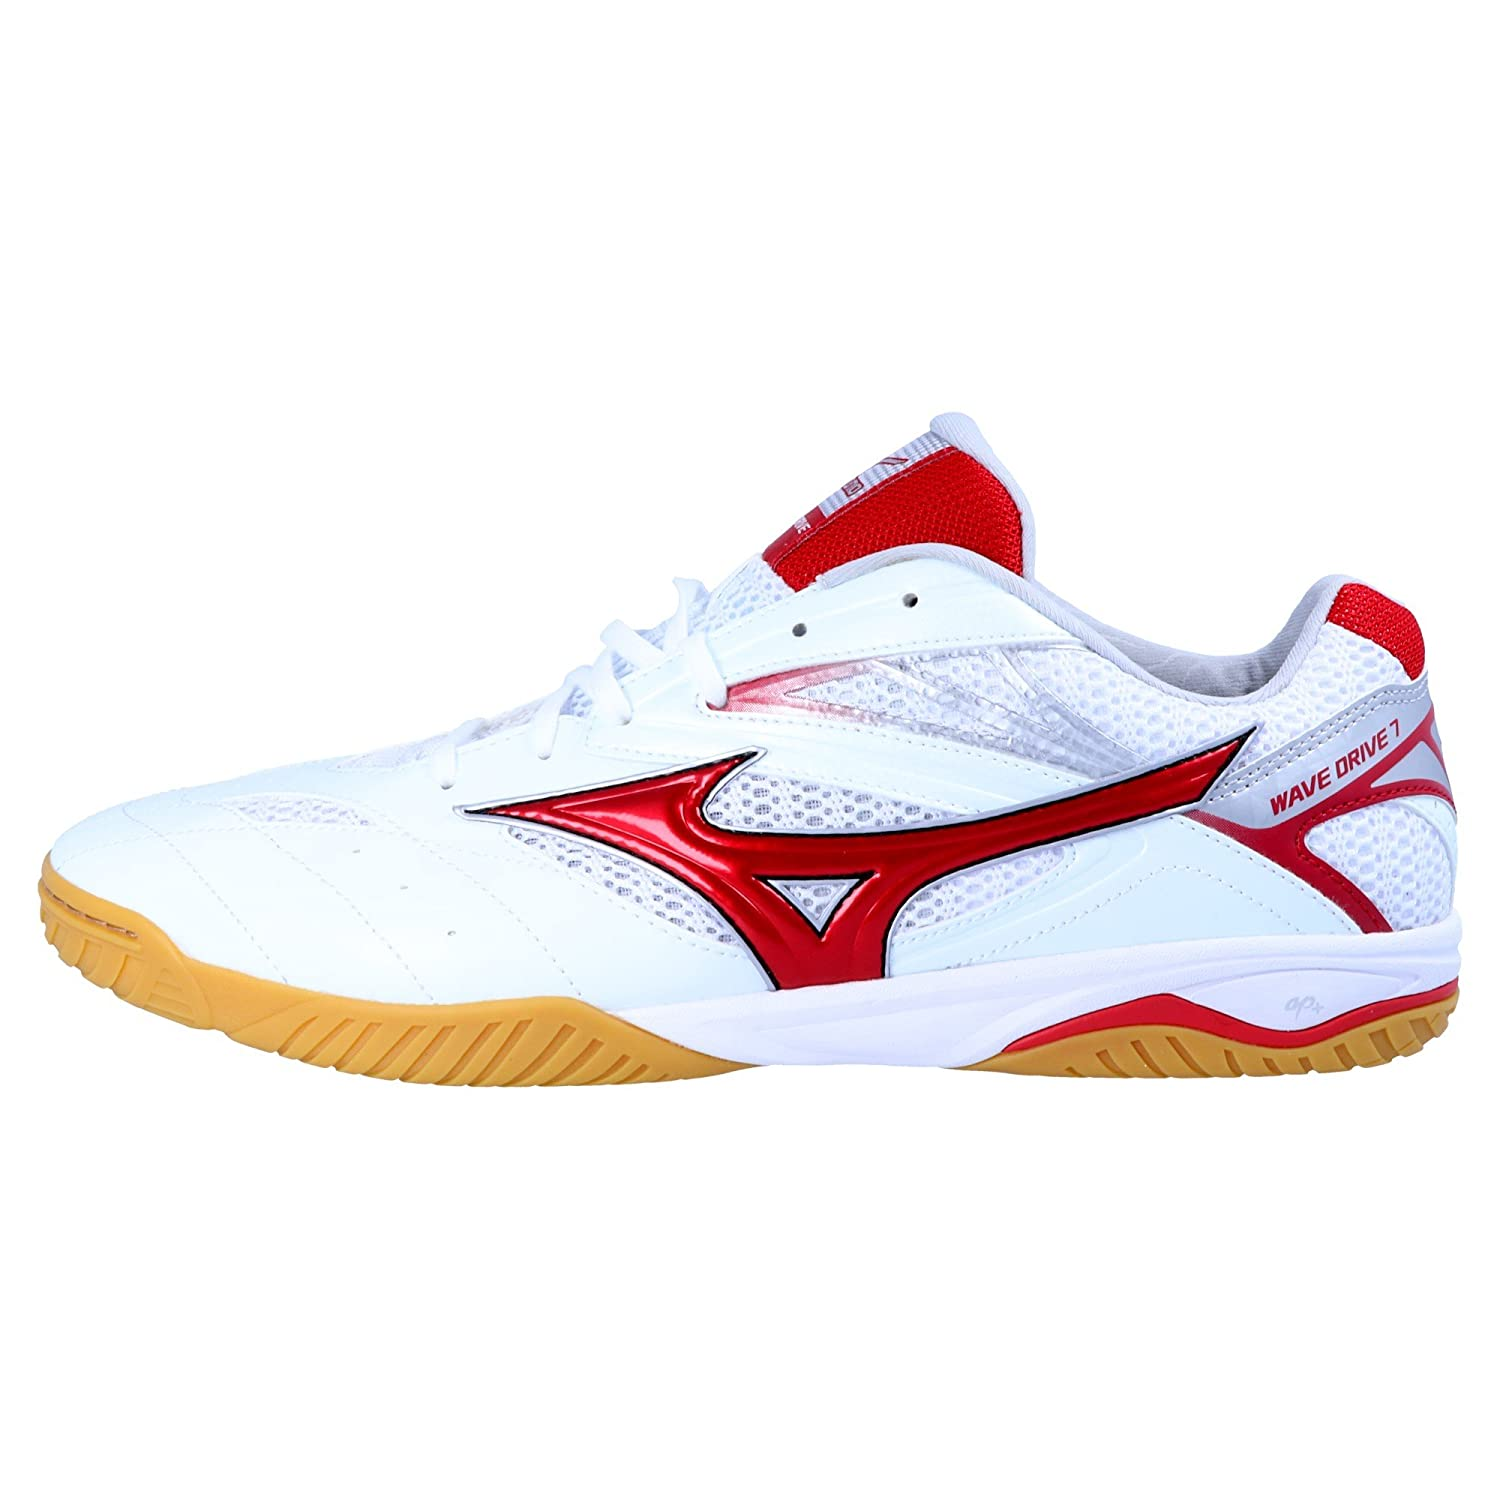 Mizuno Mens Wave Drive 8 Table Tennis Shoes Red White Sports Breathable